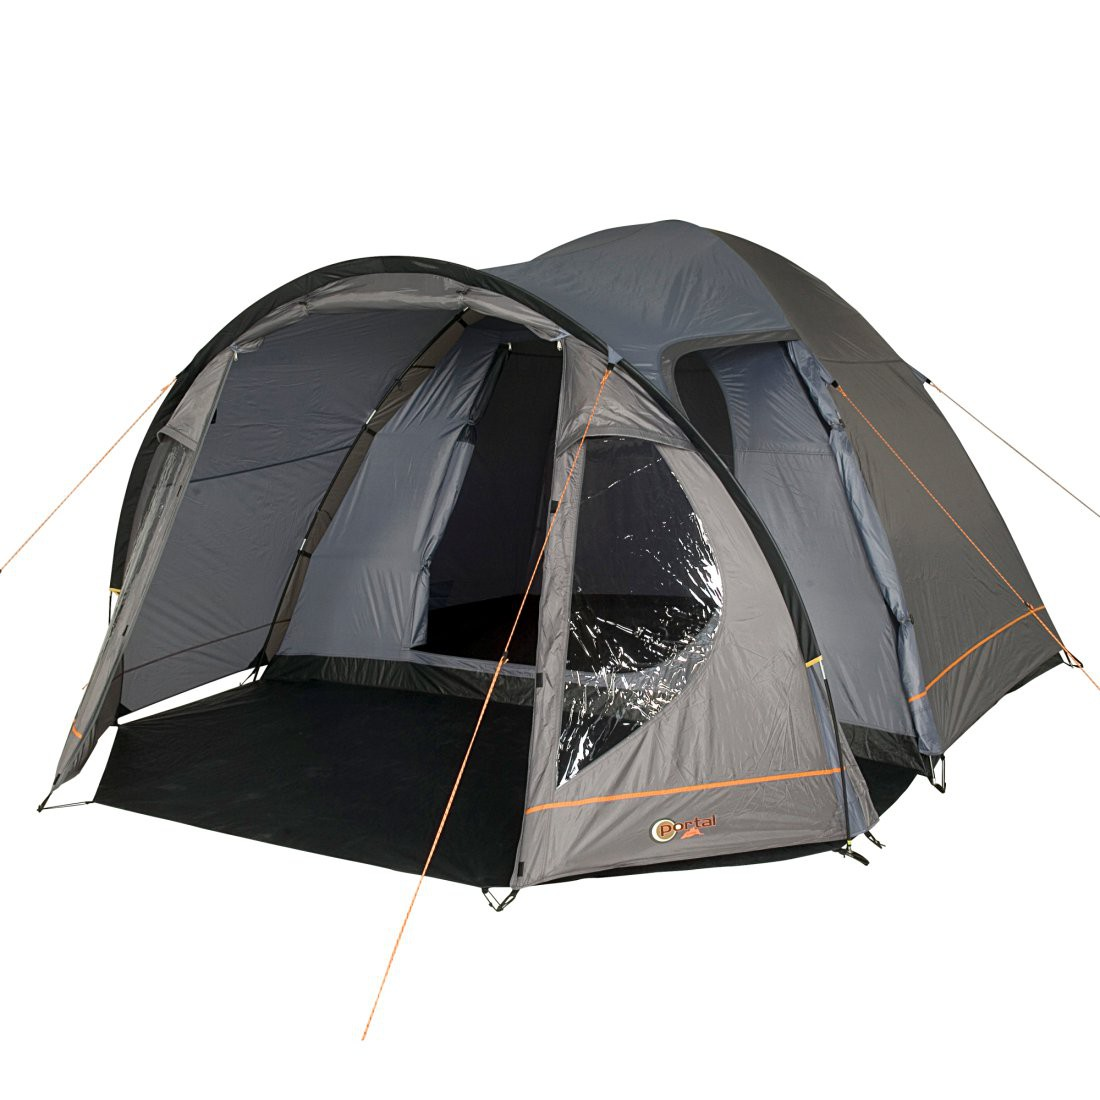 Portal - DELTA 5 Personen - Image 1  sc 1 st  C&ing-Outdoor.eu & Buy Portal Delta 5 - 5 person dome tent with vestibule 4000mm ...